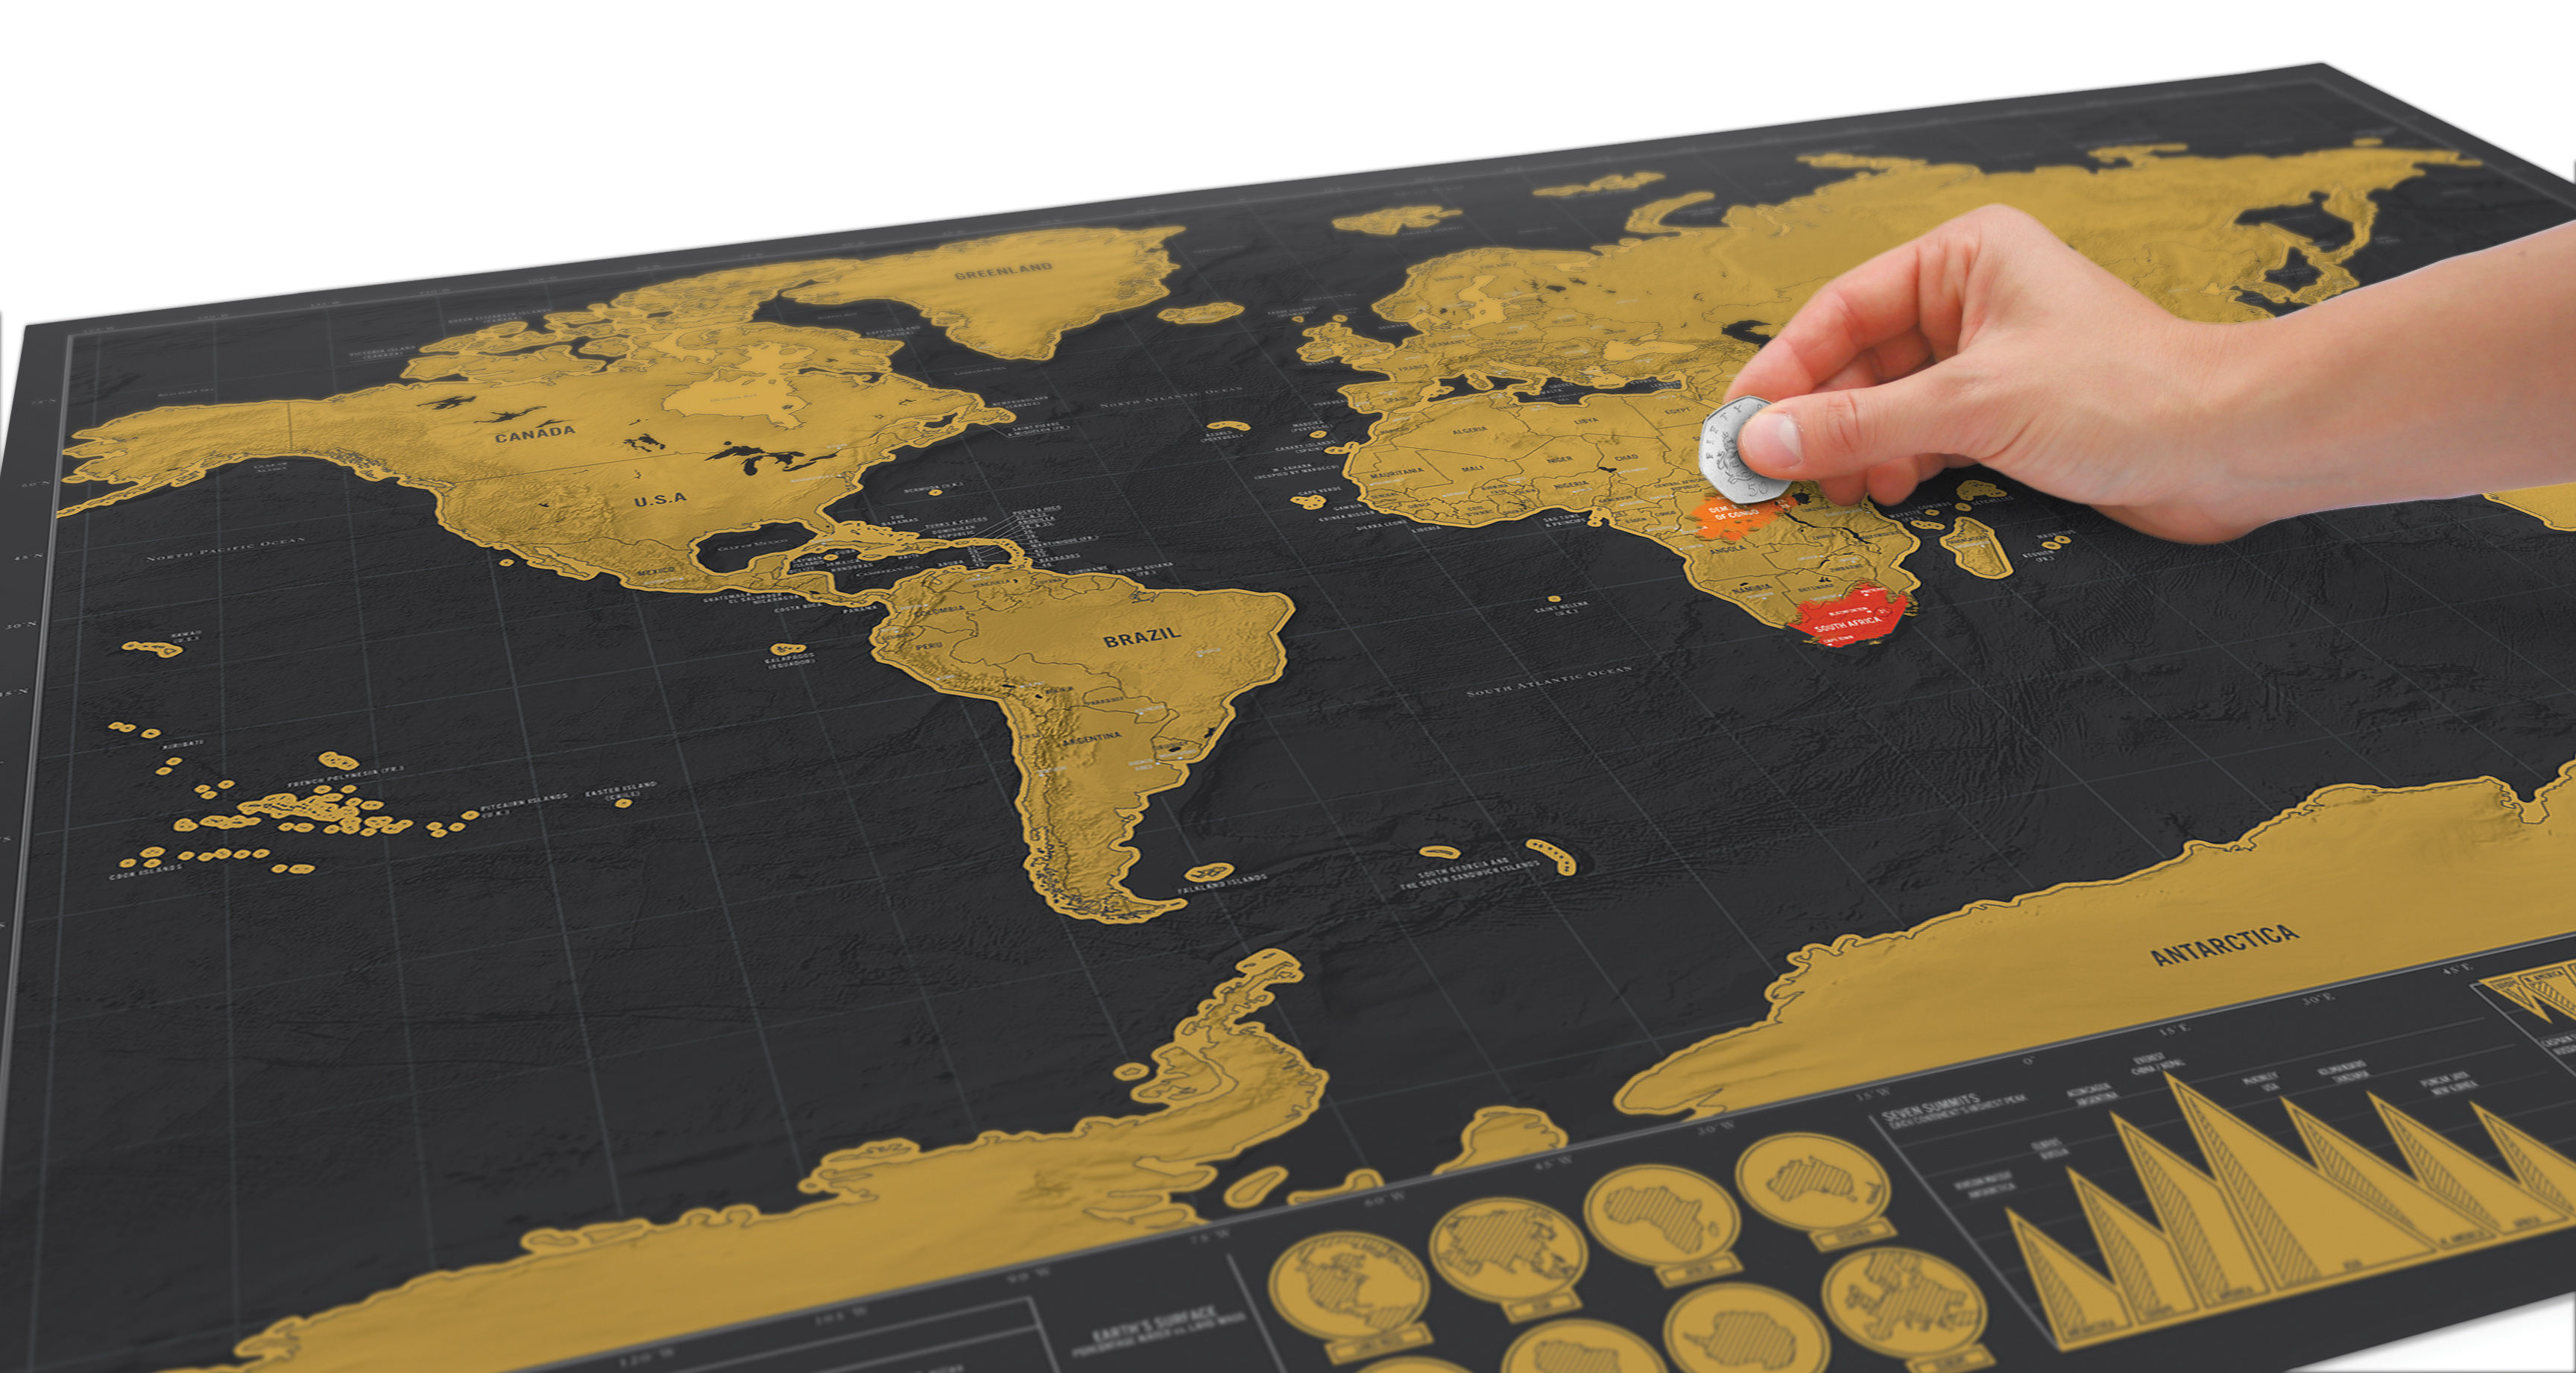 Gold World Map Poster.Scratch Map Deluxe Poster World Map To Scratch And Accessories